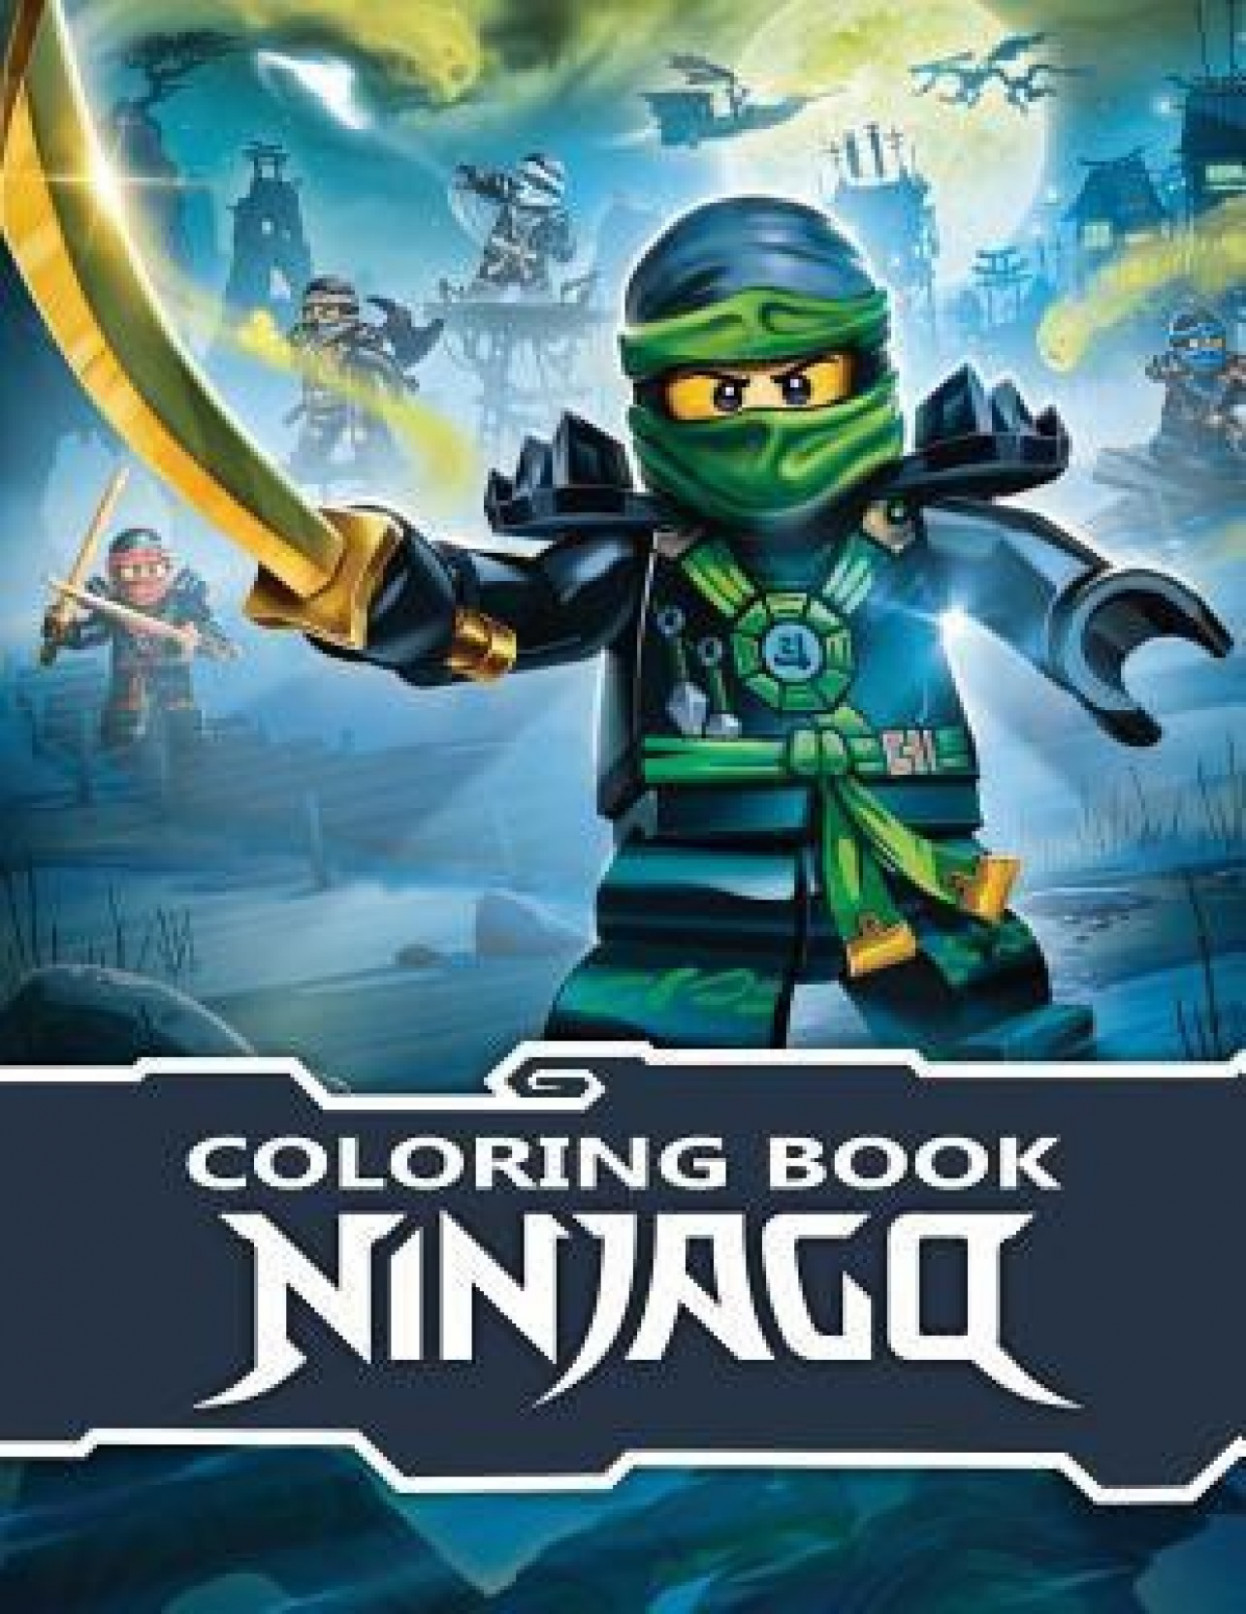 Ninjago Coloring Book: Buy Ninjago Coloring Book by Paradise Books ..